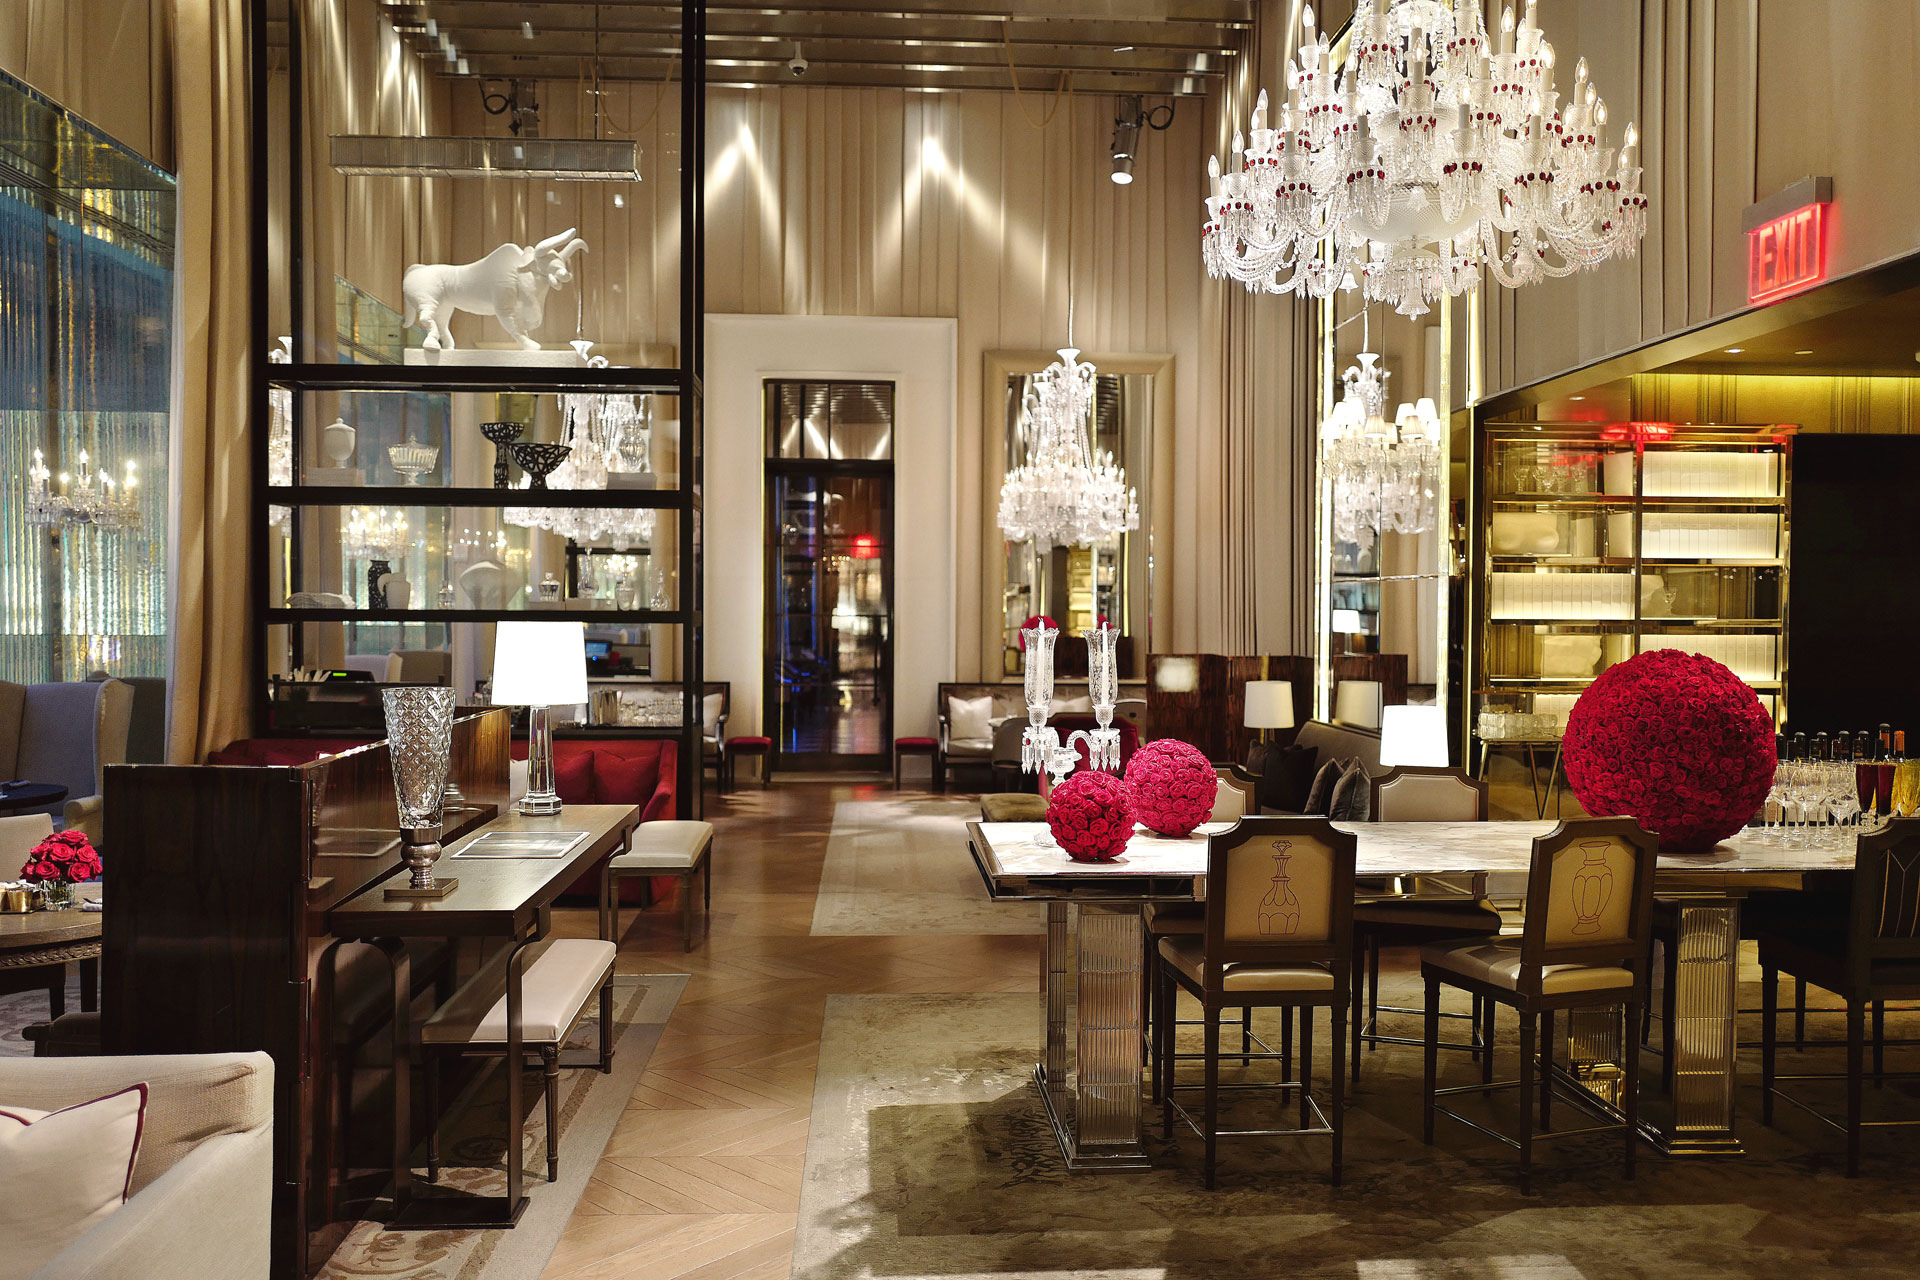 Grand Salon The Beauty Of The Baccarat Hotel In My Words Christopher R King